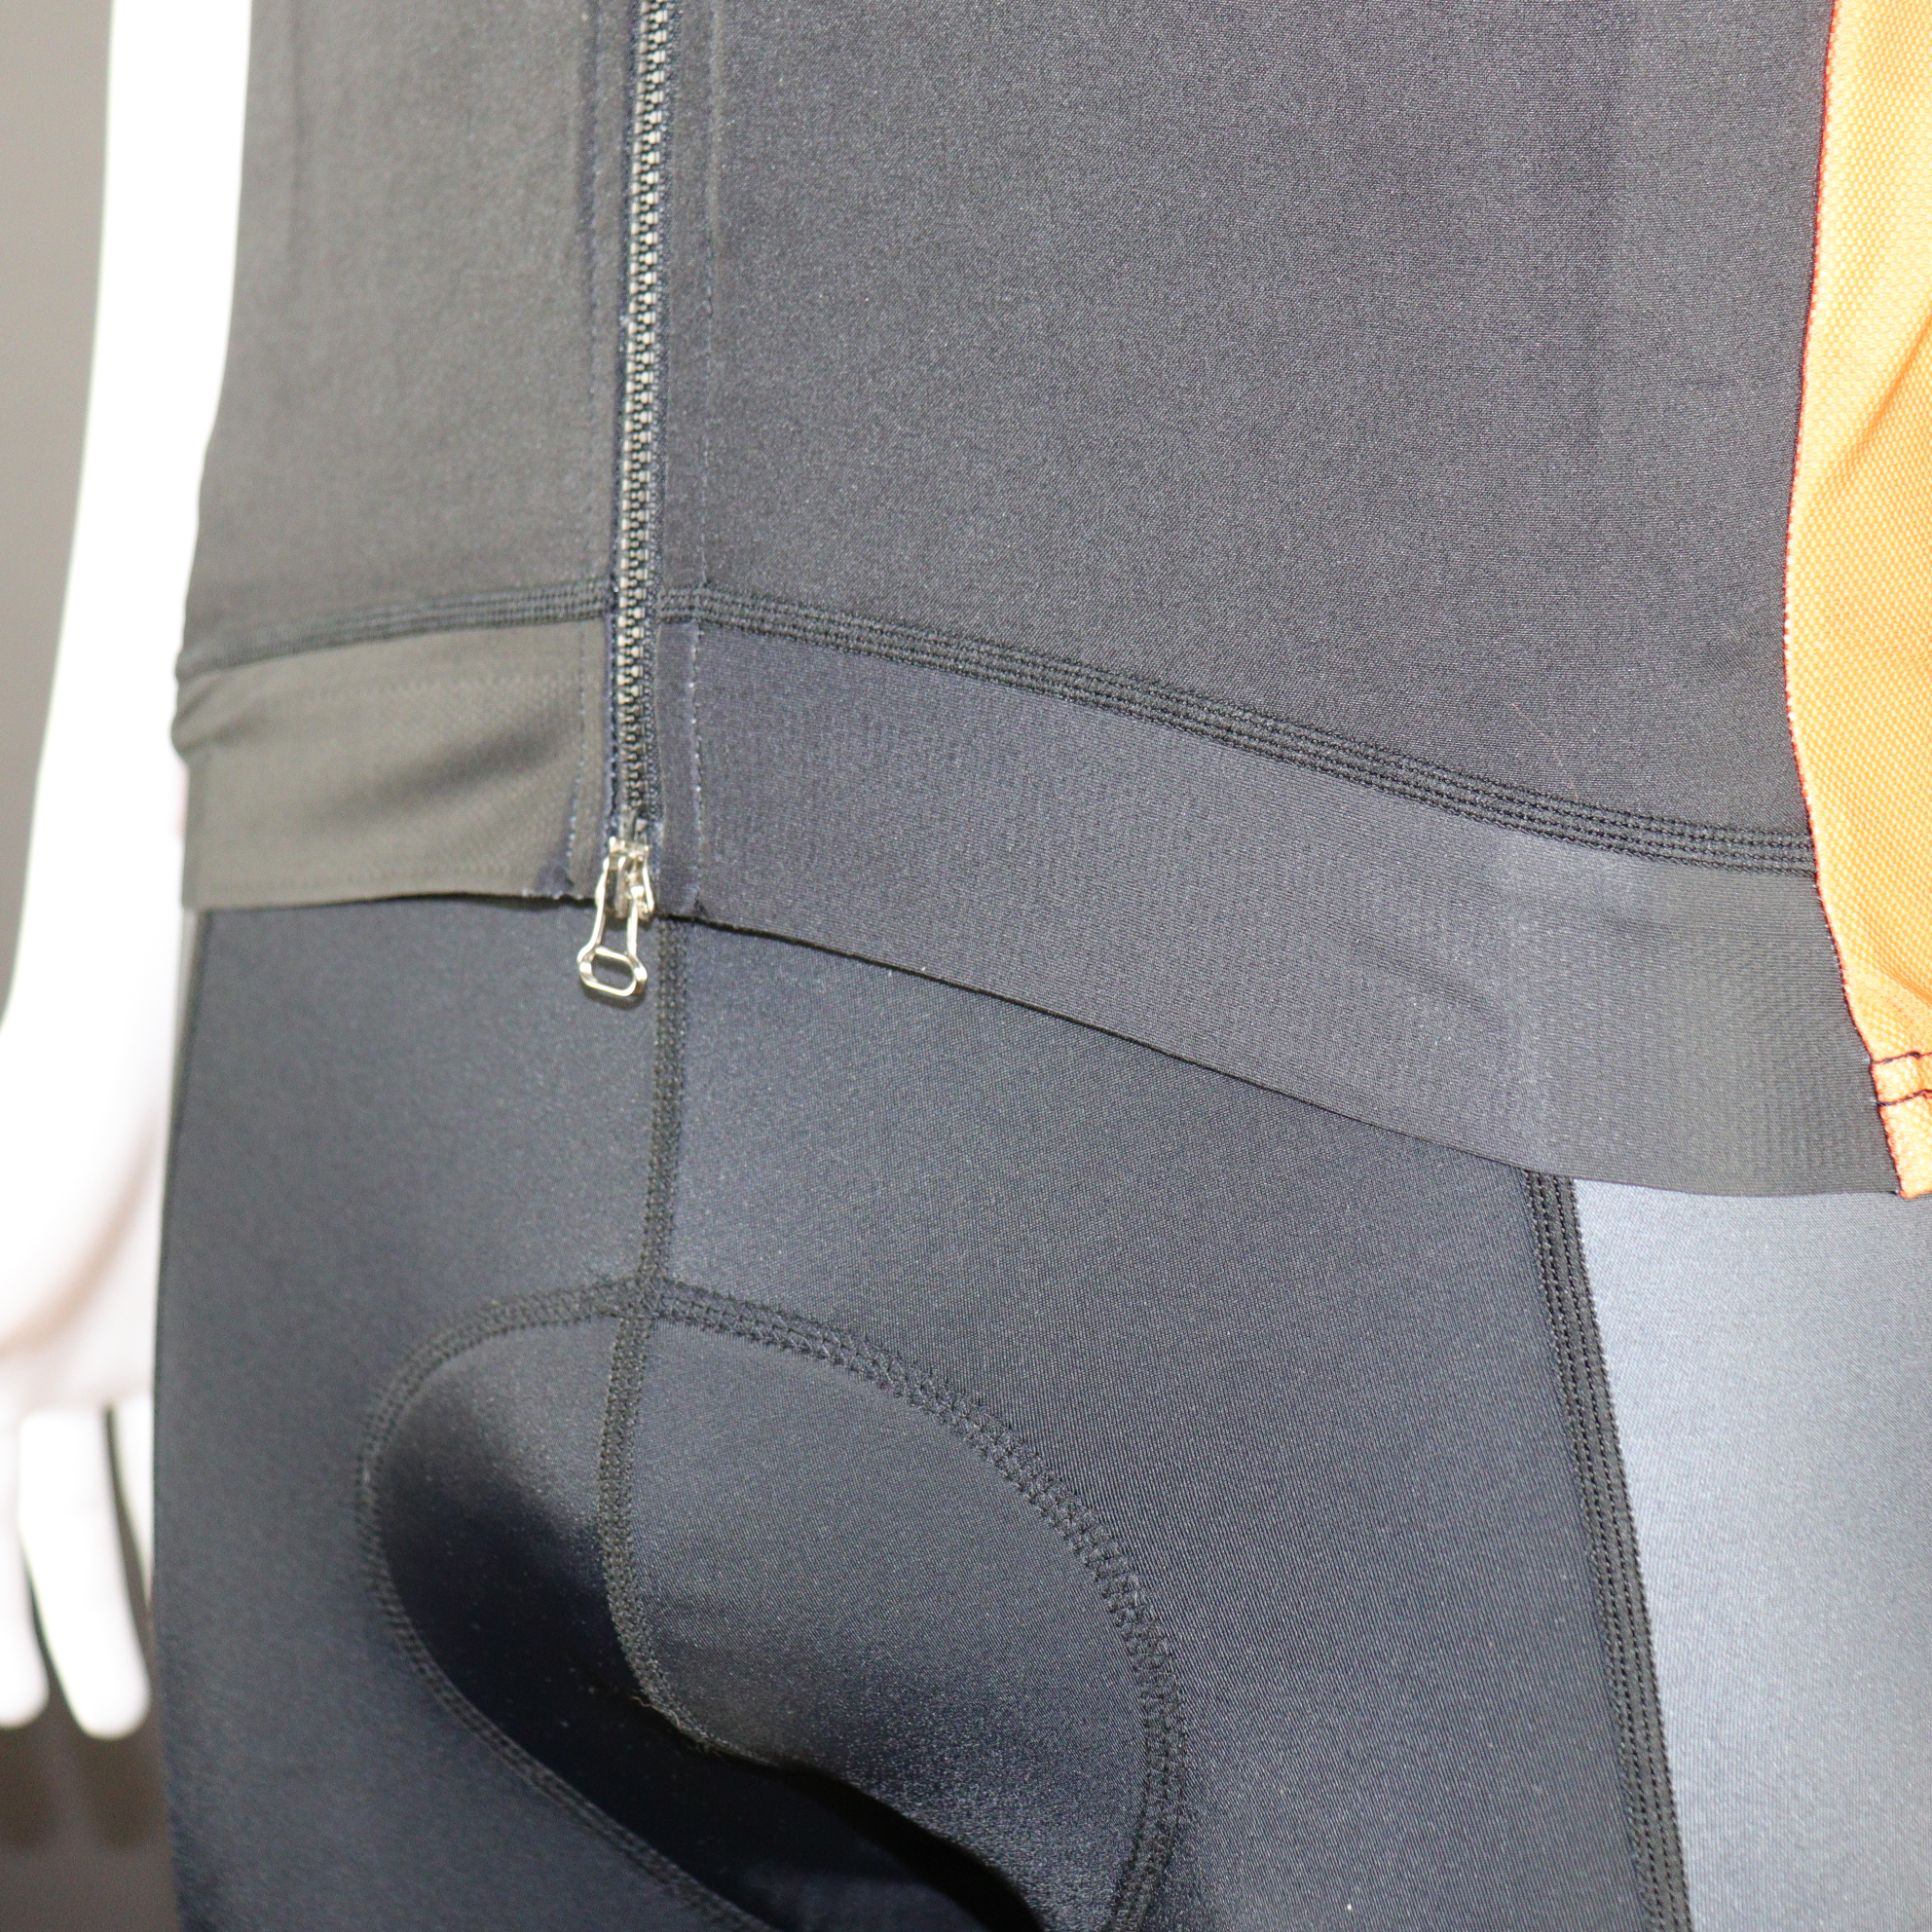 Pro Cycle Gilets Twin Opening Double Zip